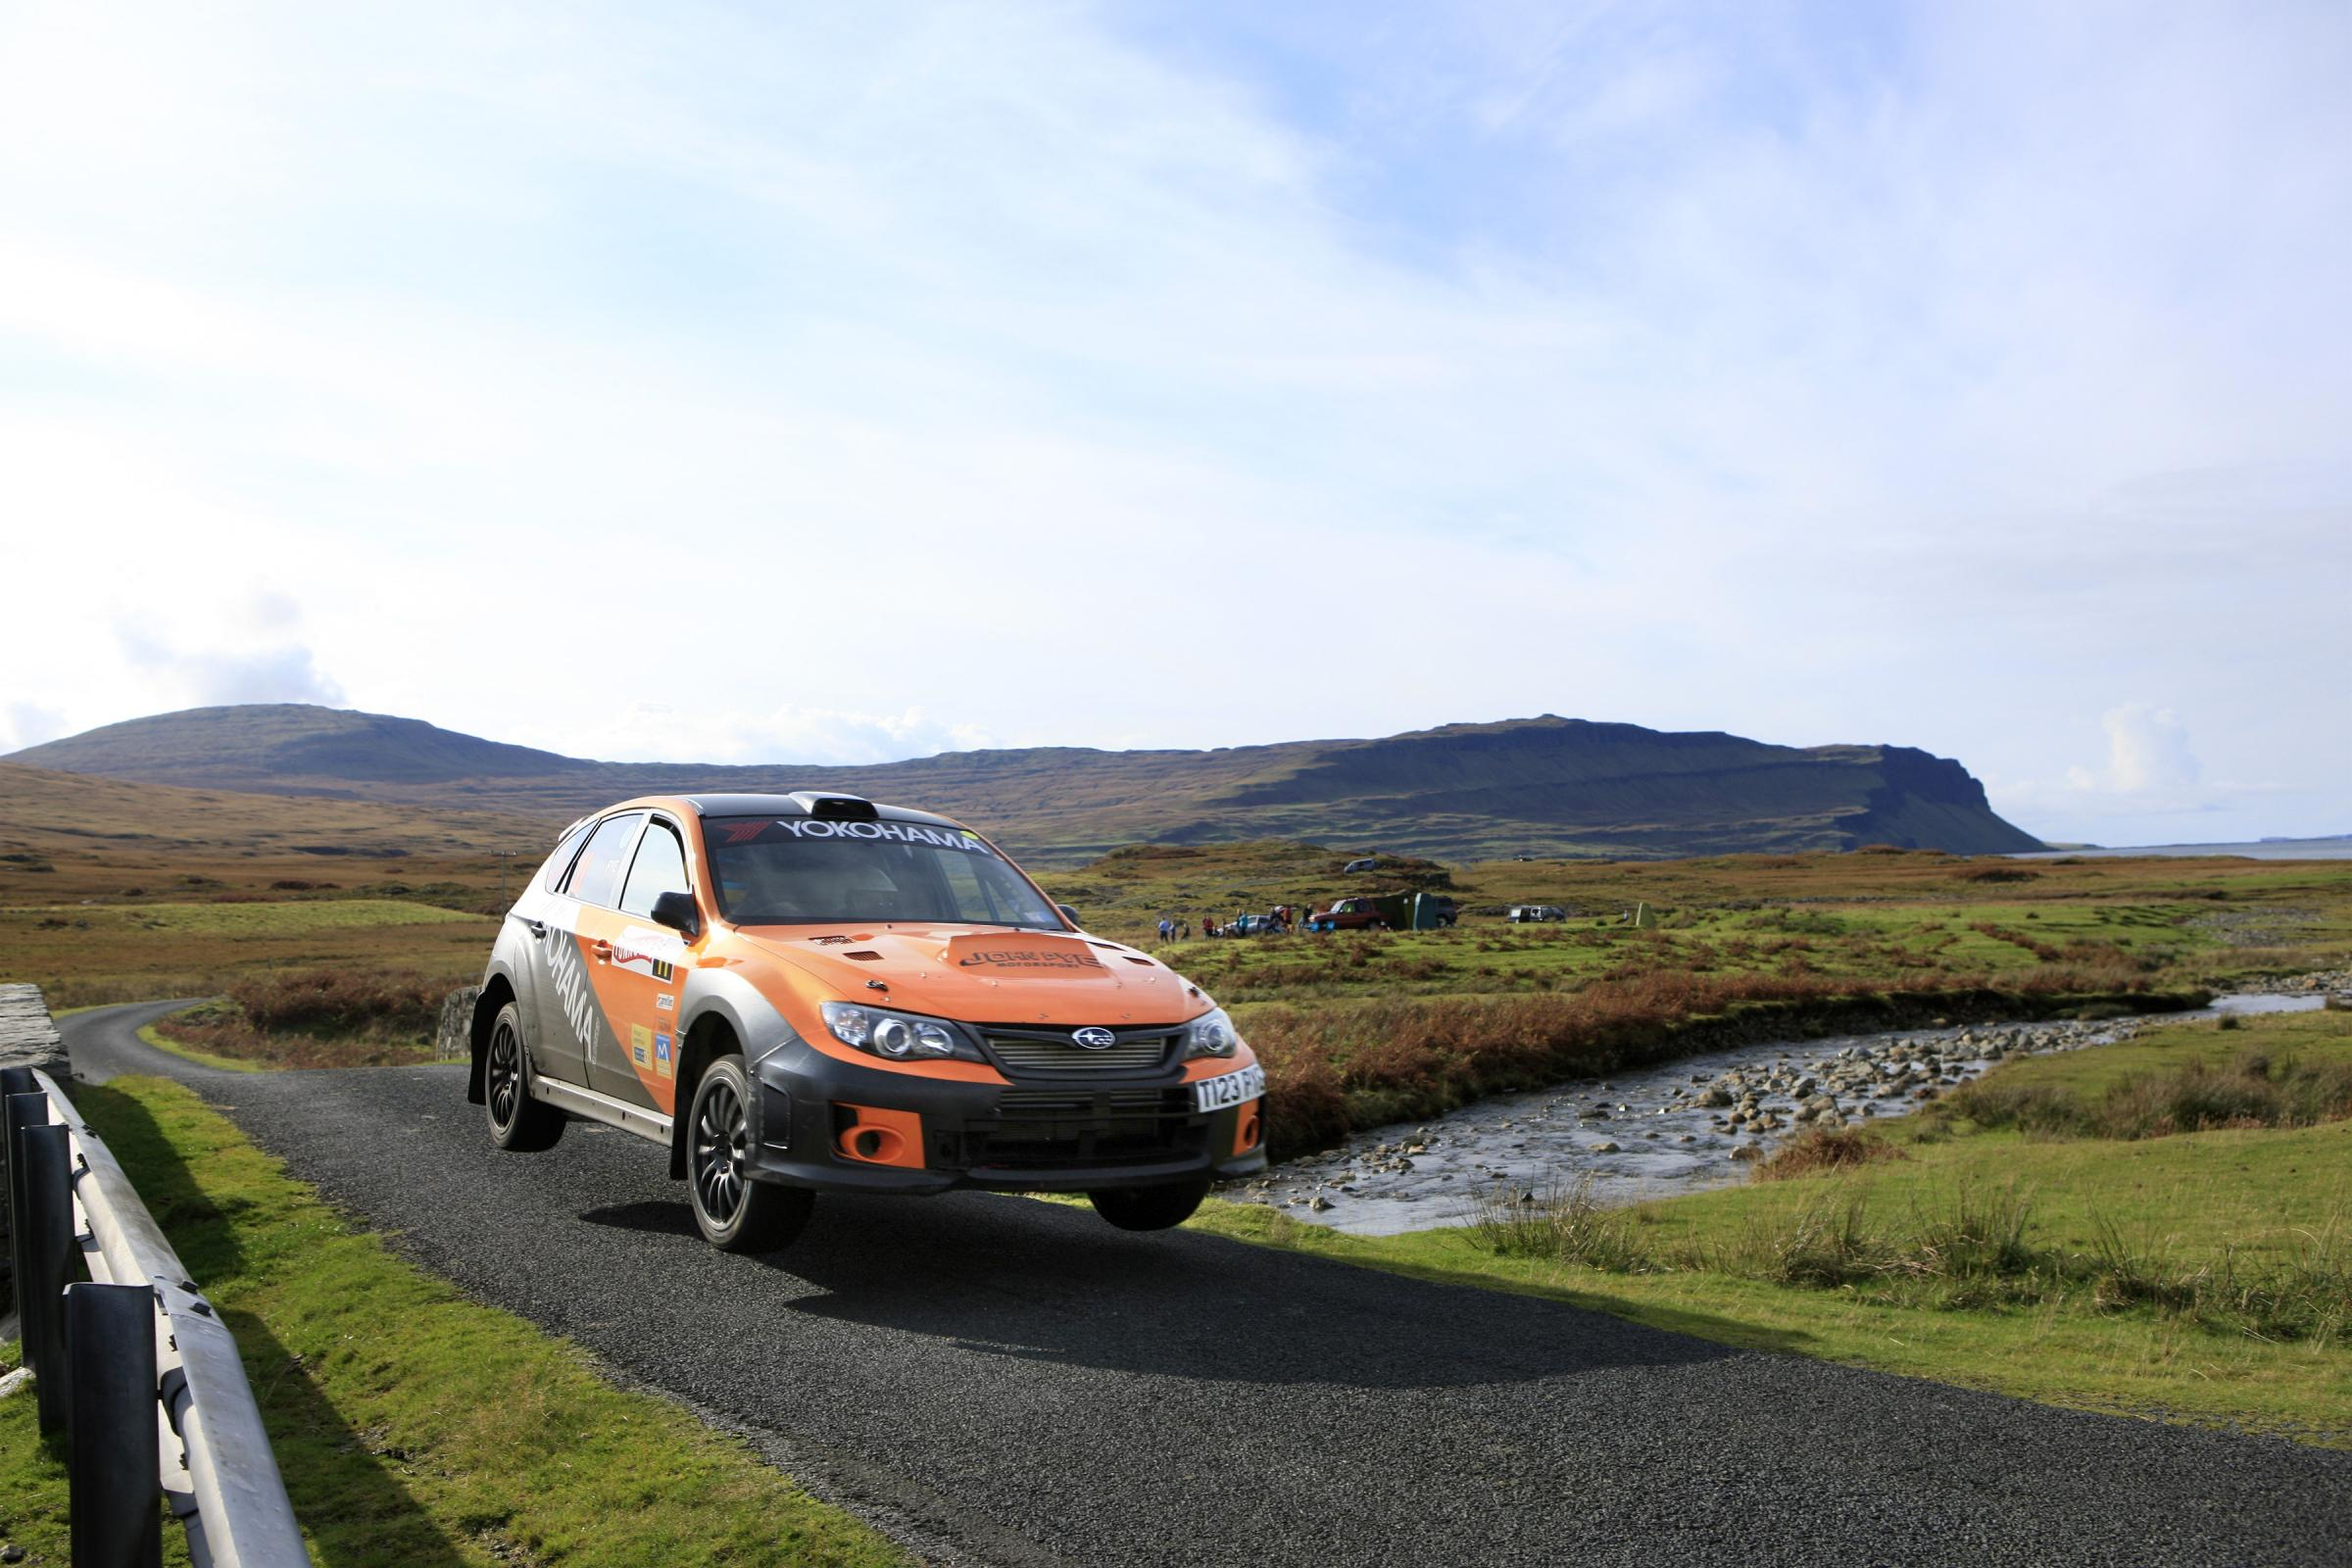 Rally car on Mull